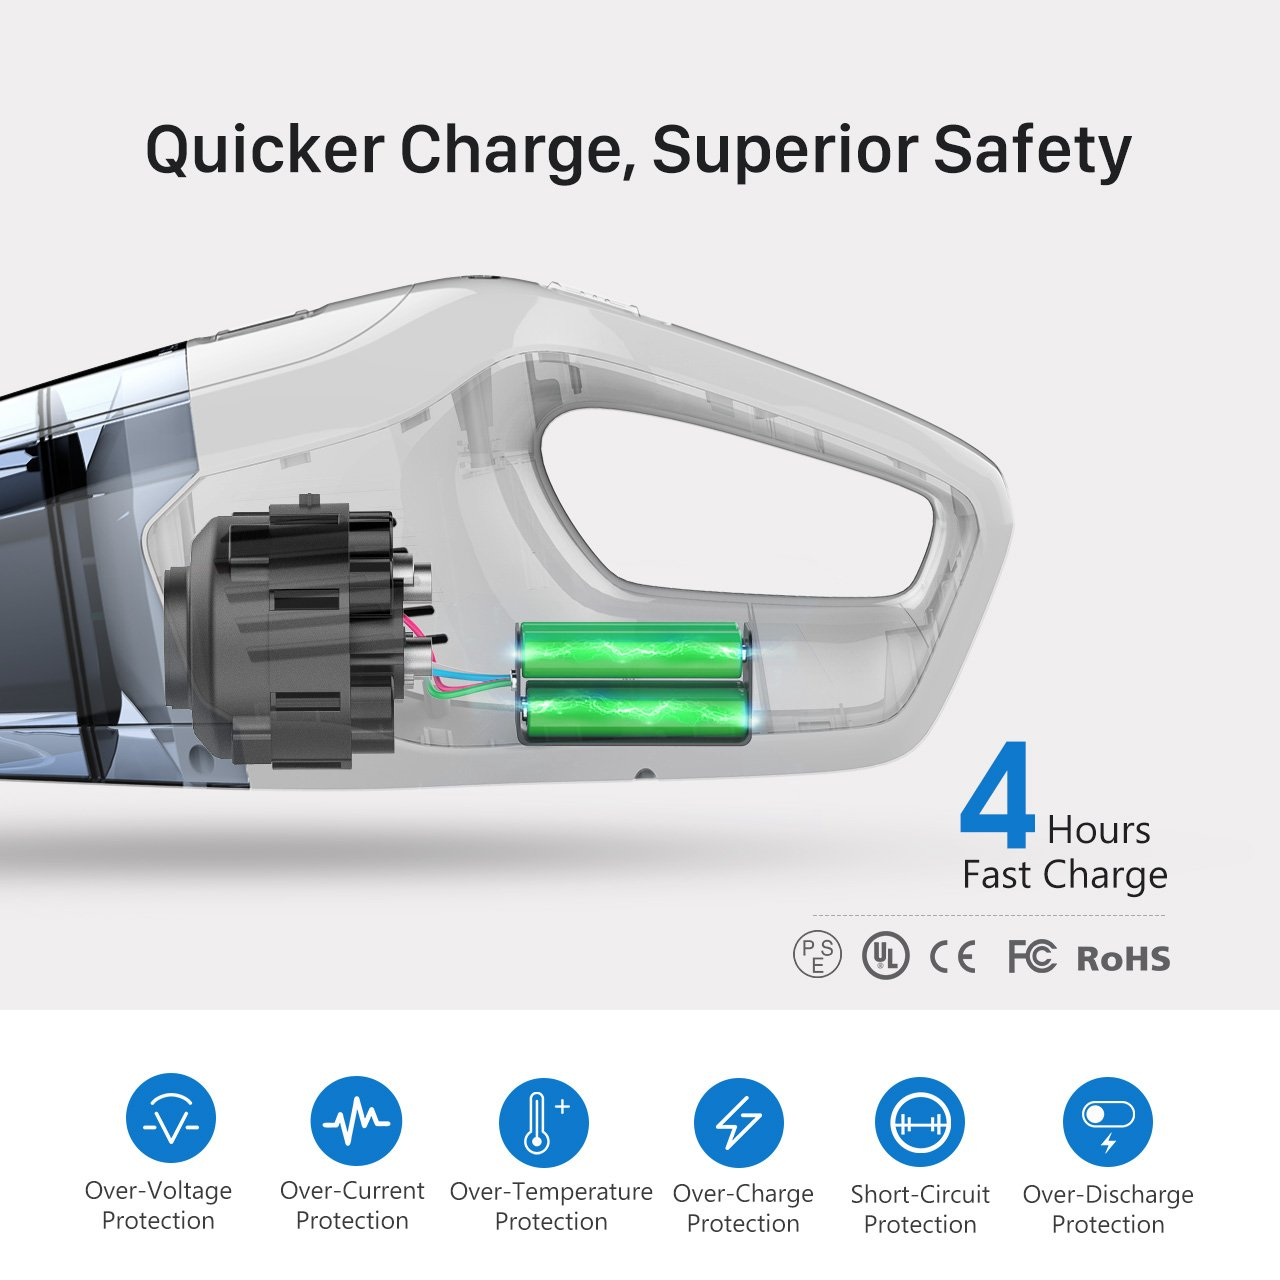 Handheld Vacuum Cordless, Holife 6KPA Hand Vacuum Cleaner Rechargeable Hand Vac, 14.8V Lithium with Quick Charge, Lightweight Wet Dry Vacuum for Home Pet Hair Car Cleaning (Upgraded Version) by HoLife (Image #6)